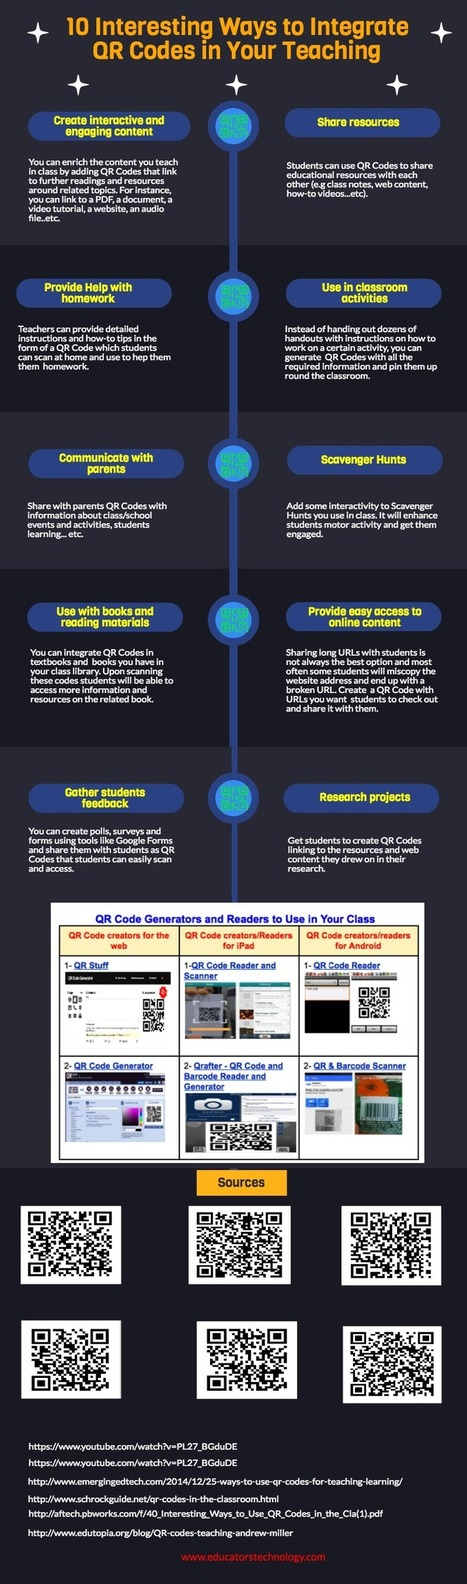 10 Interesting Ways to Integrate QR Codes in Your Teaching via @medkh9  | learning by using iPads | Scoop.it